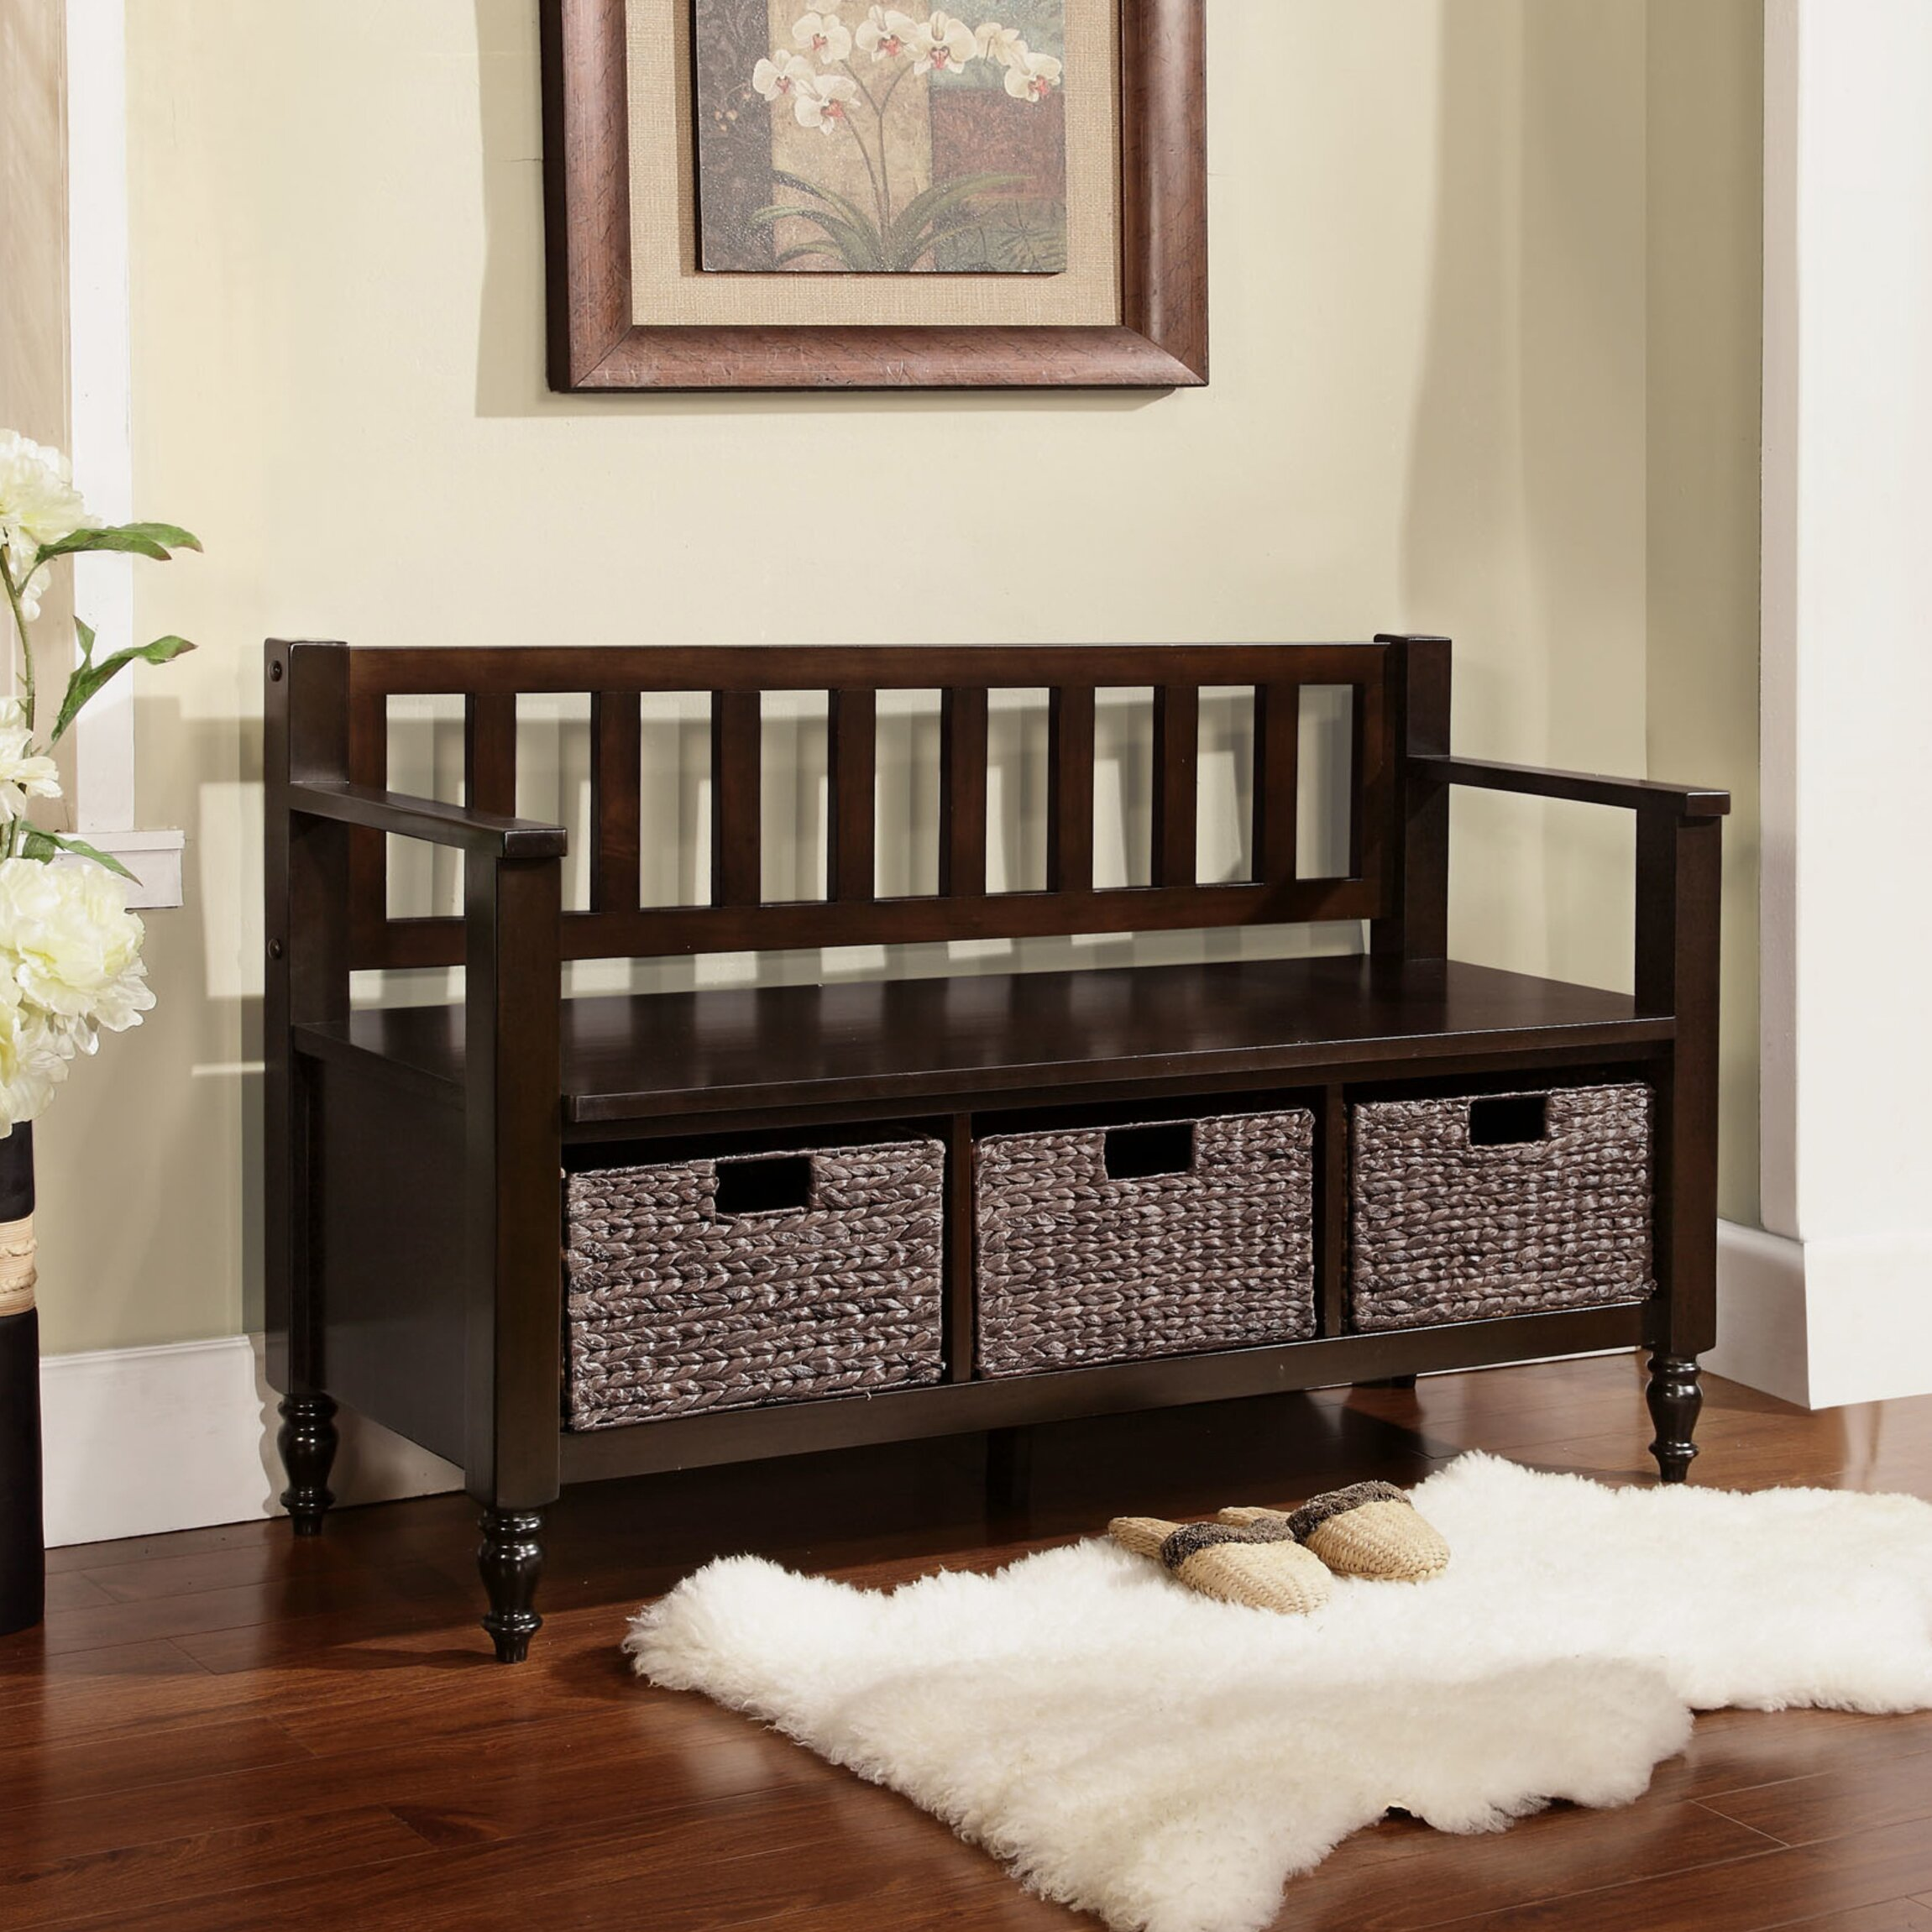 Simpli home dakota entryway bench reviews wayfair for Foyer designs india